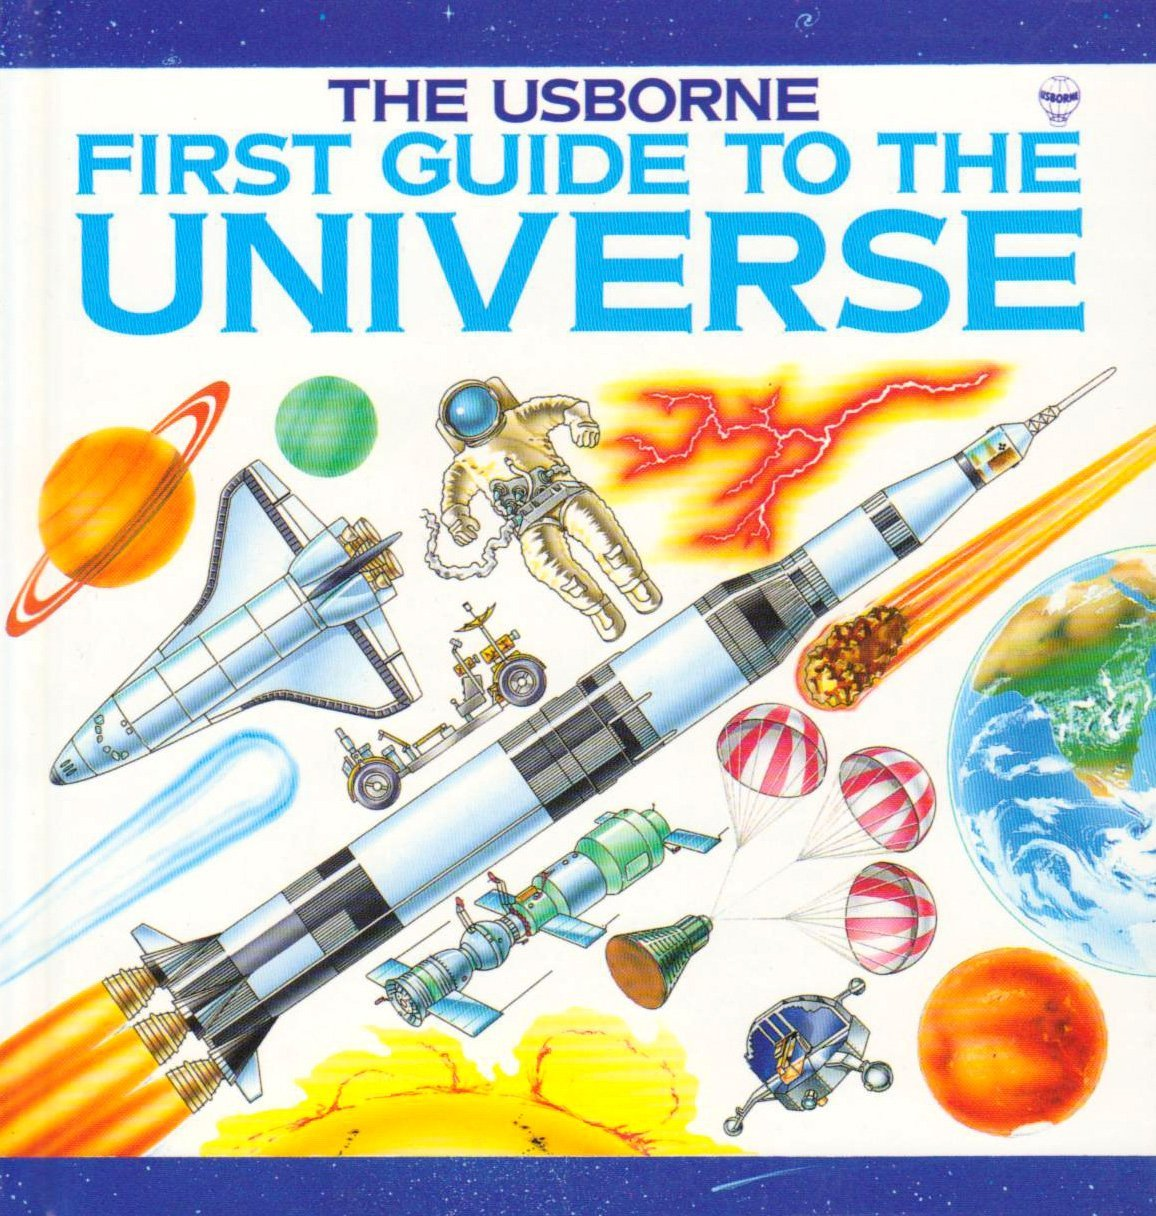 First Guide to the Universe